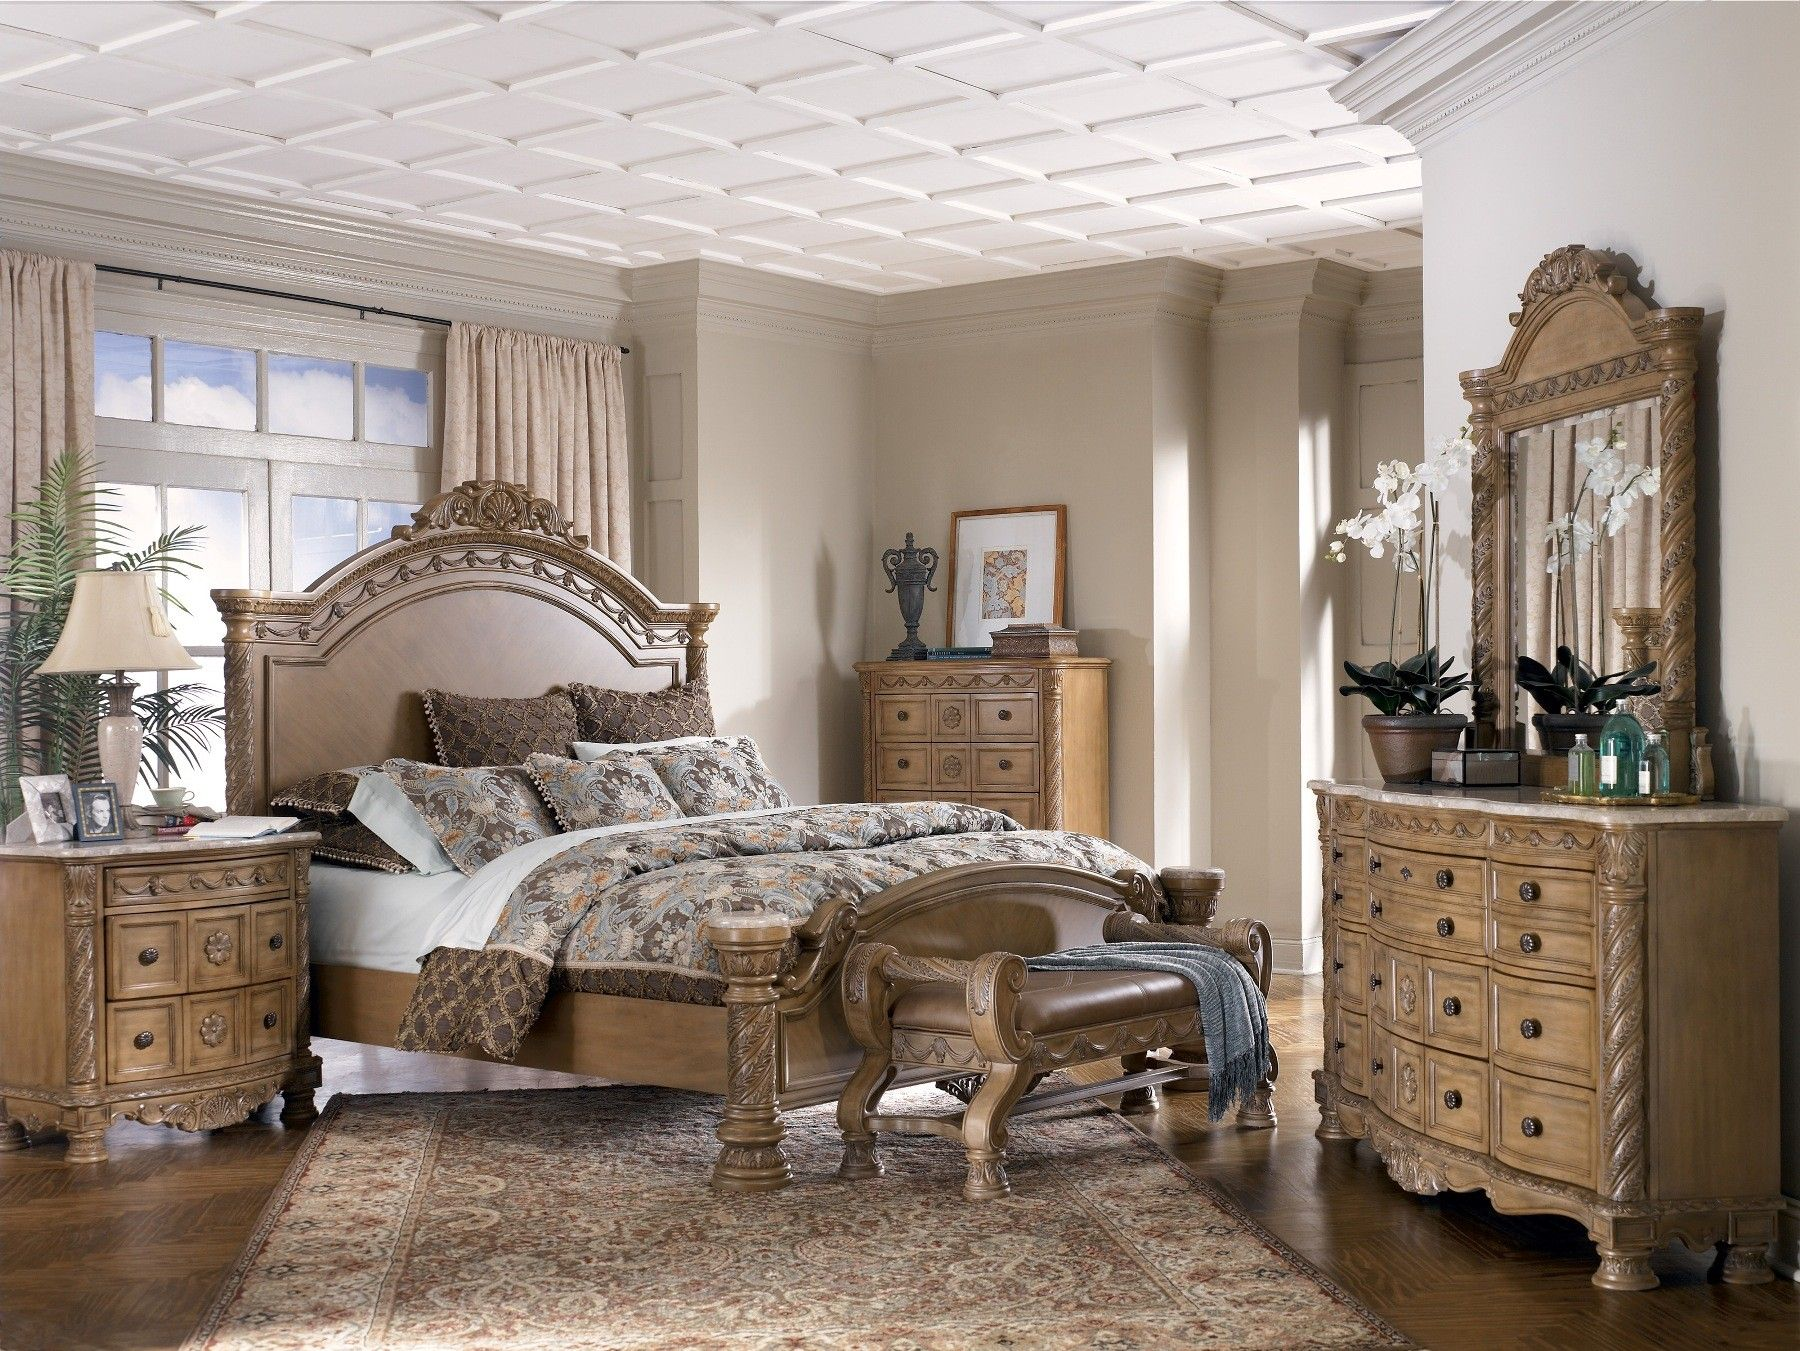 Ashley white bedroom furniture - Incredible Bedroom Amazing Ashley Furniture White Bedroom Set Interior Decor Ashley Furniture Breen Bedroom Set Ashley Furniture Embrace Youth Bedroom